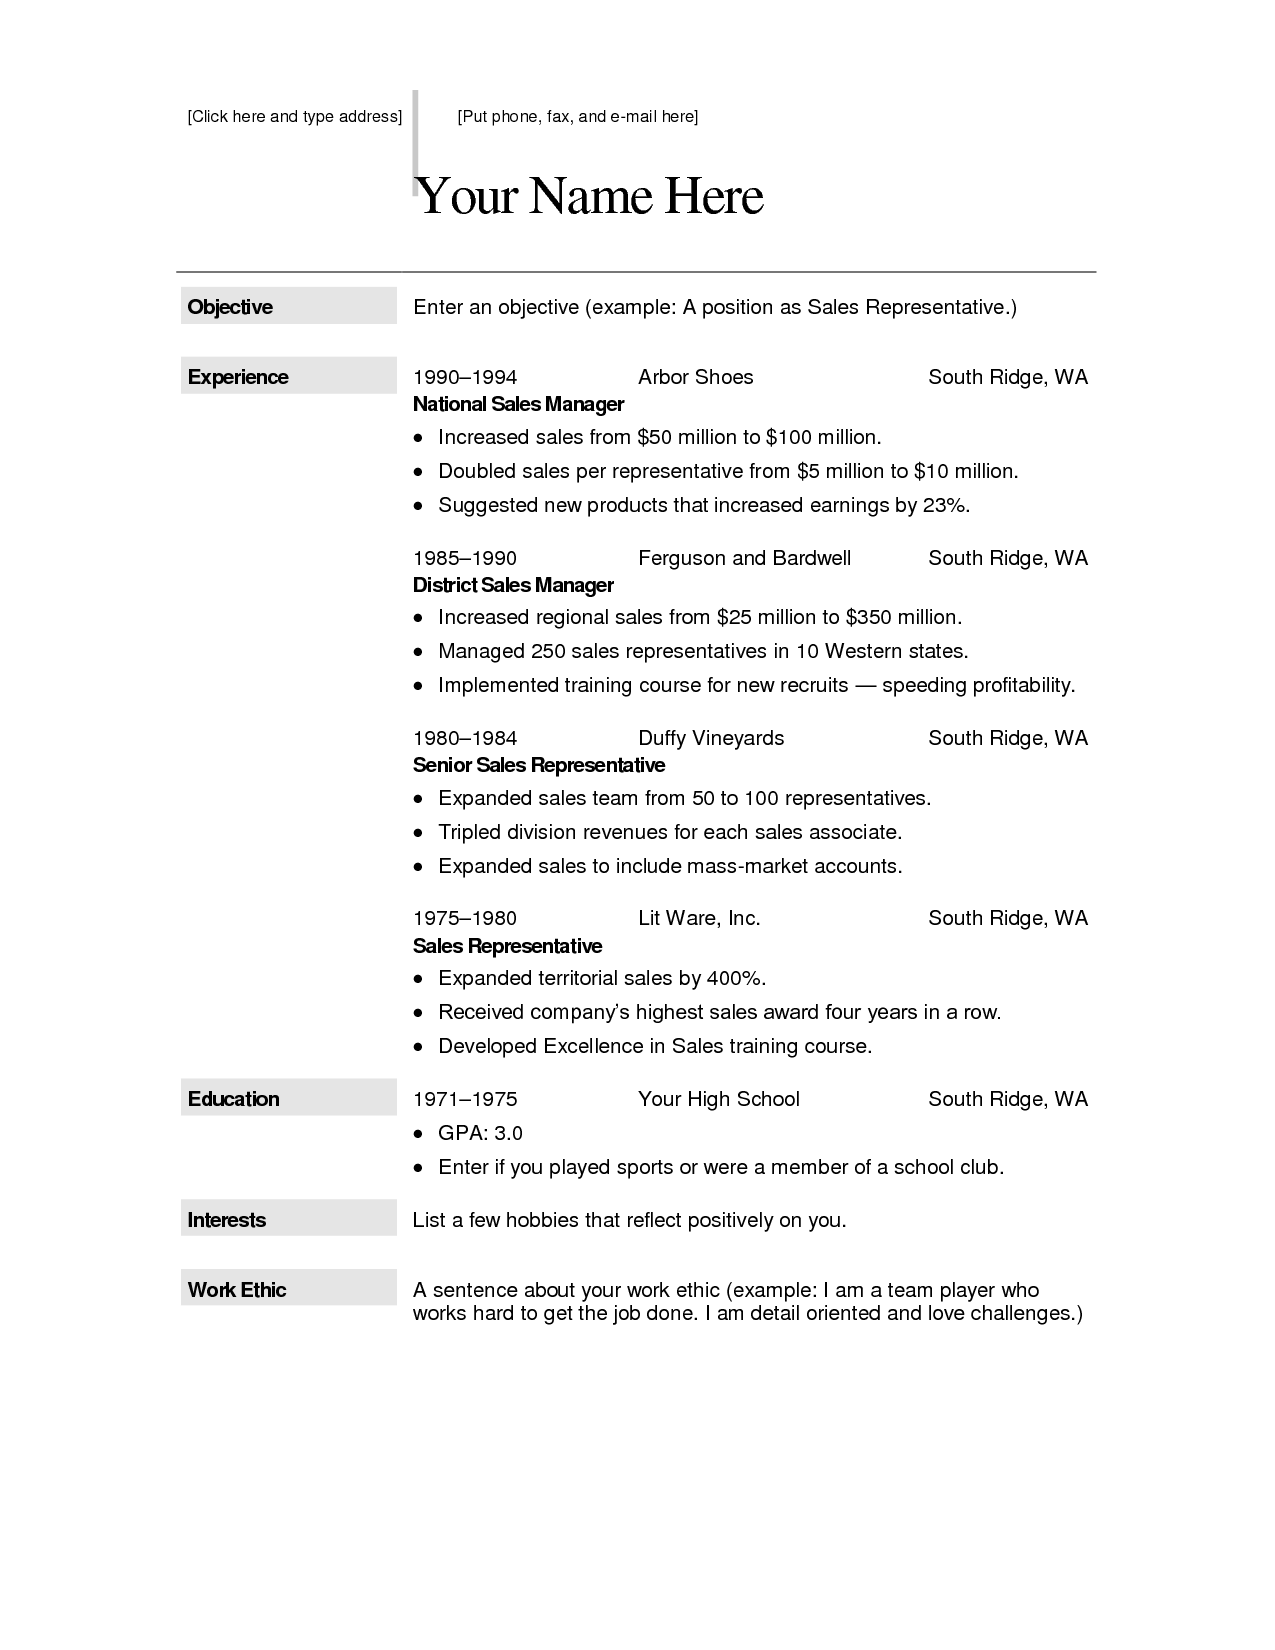 free creative resume templates for macfree creative resume templates for mac modern resume template - Free Easy Resume Templates